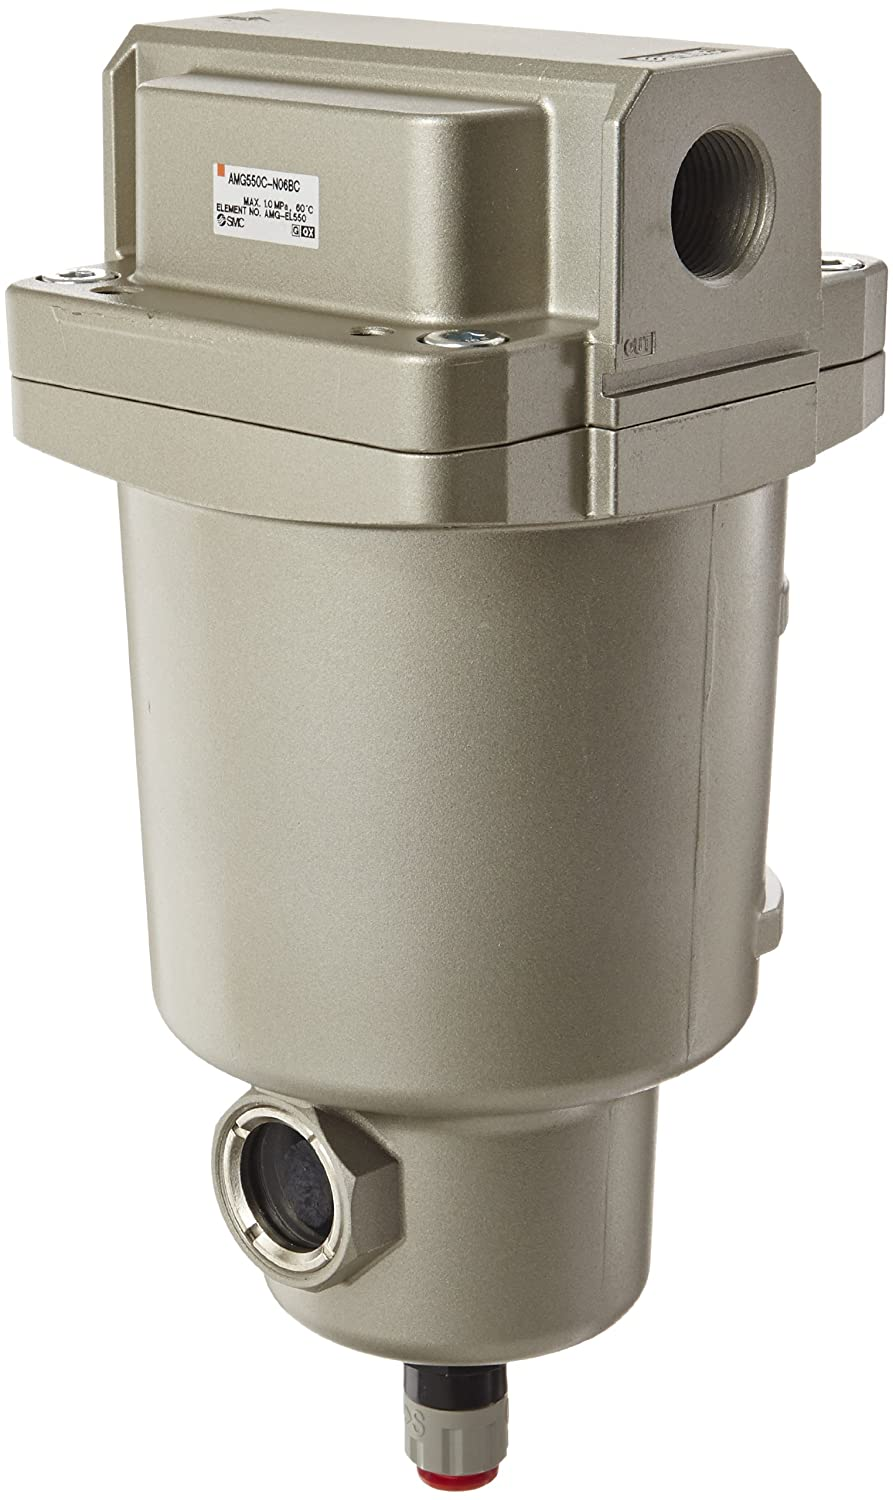 SMC AMG550C-N06BC Water Separator, N.C. Auto Drain, 3,700 L/min, 3/4 NPT, Mounting Bracket by SMC Corporation B009VQ0QOY